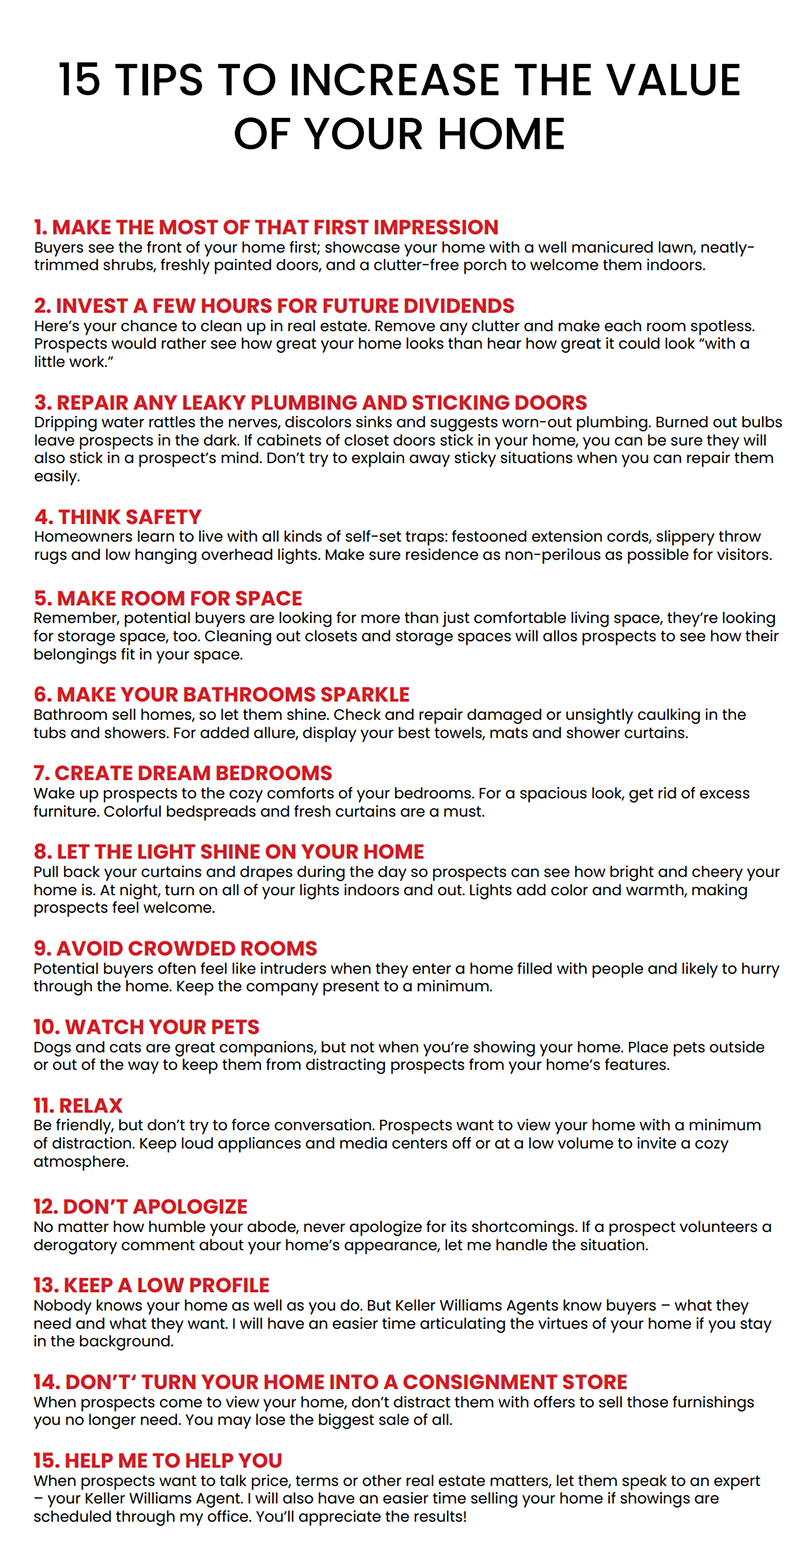 15 tips to increase value of your home. make the most of that first impression. invest a few hours for future dividends. repair any leaky plumbing and sticking doors. think safety. make room for space. make your bathrooms sparkle. create dream bedrooms. let the light shine on your home. avoid crowded rooms. watch your pets. relax. do not apologize. keep a low profile. do not turn your home into a consignment store. help me to help you.